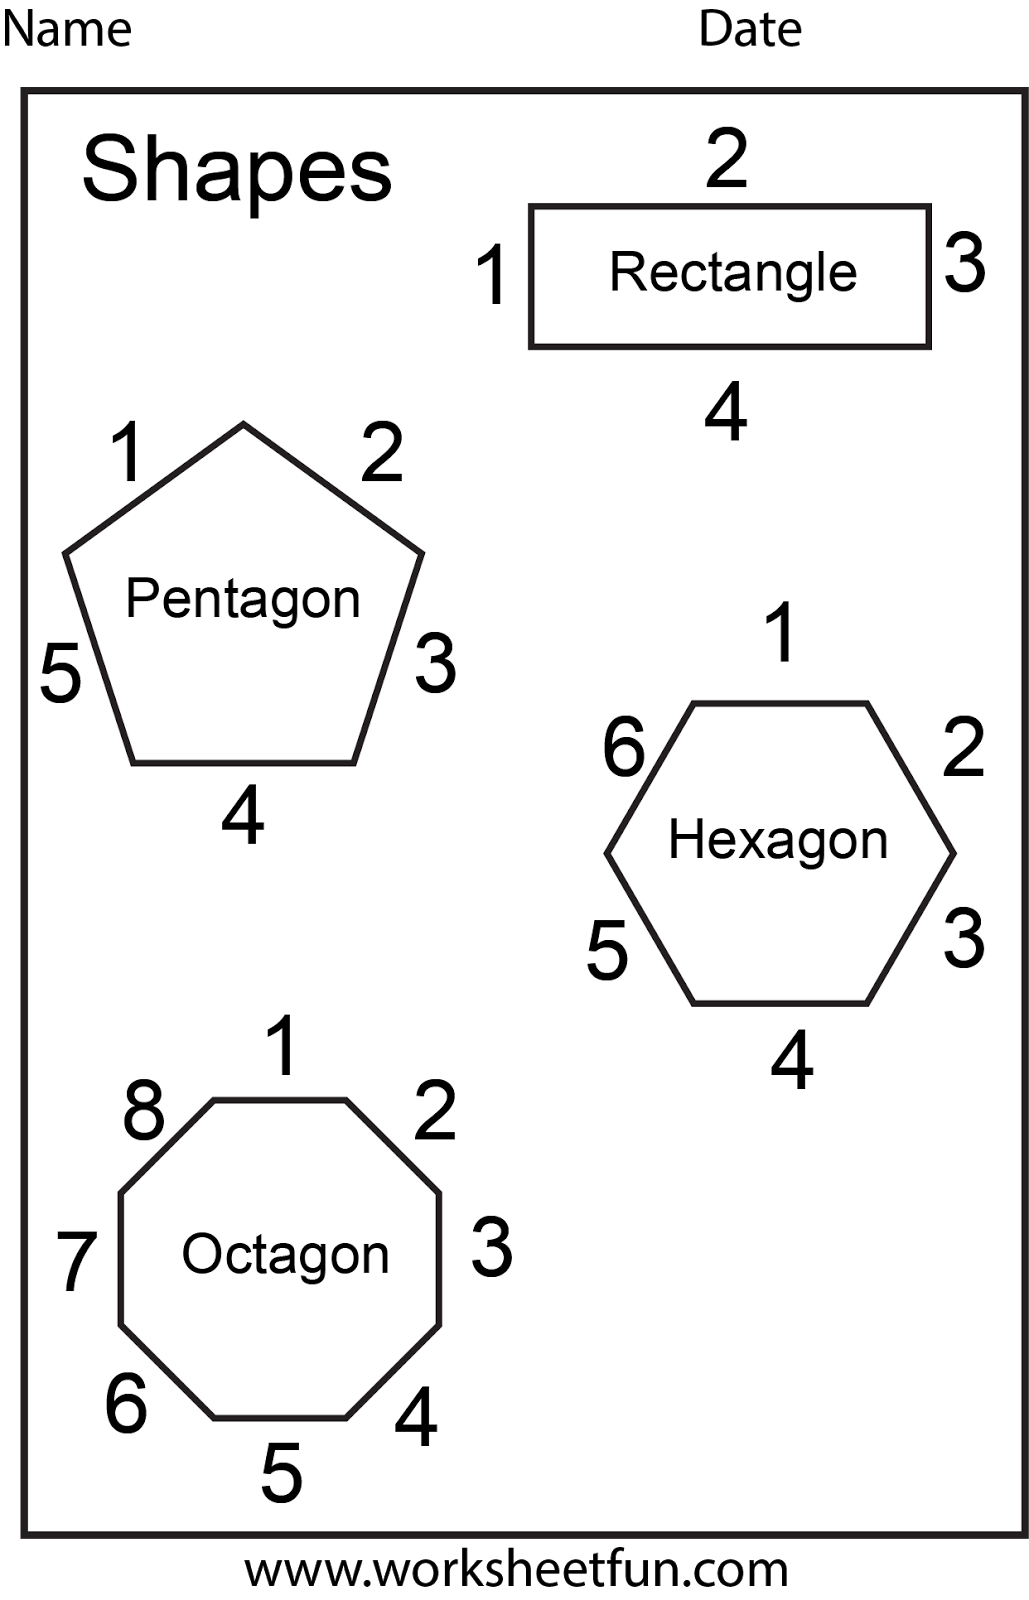 Shapes Number Of Sides